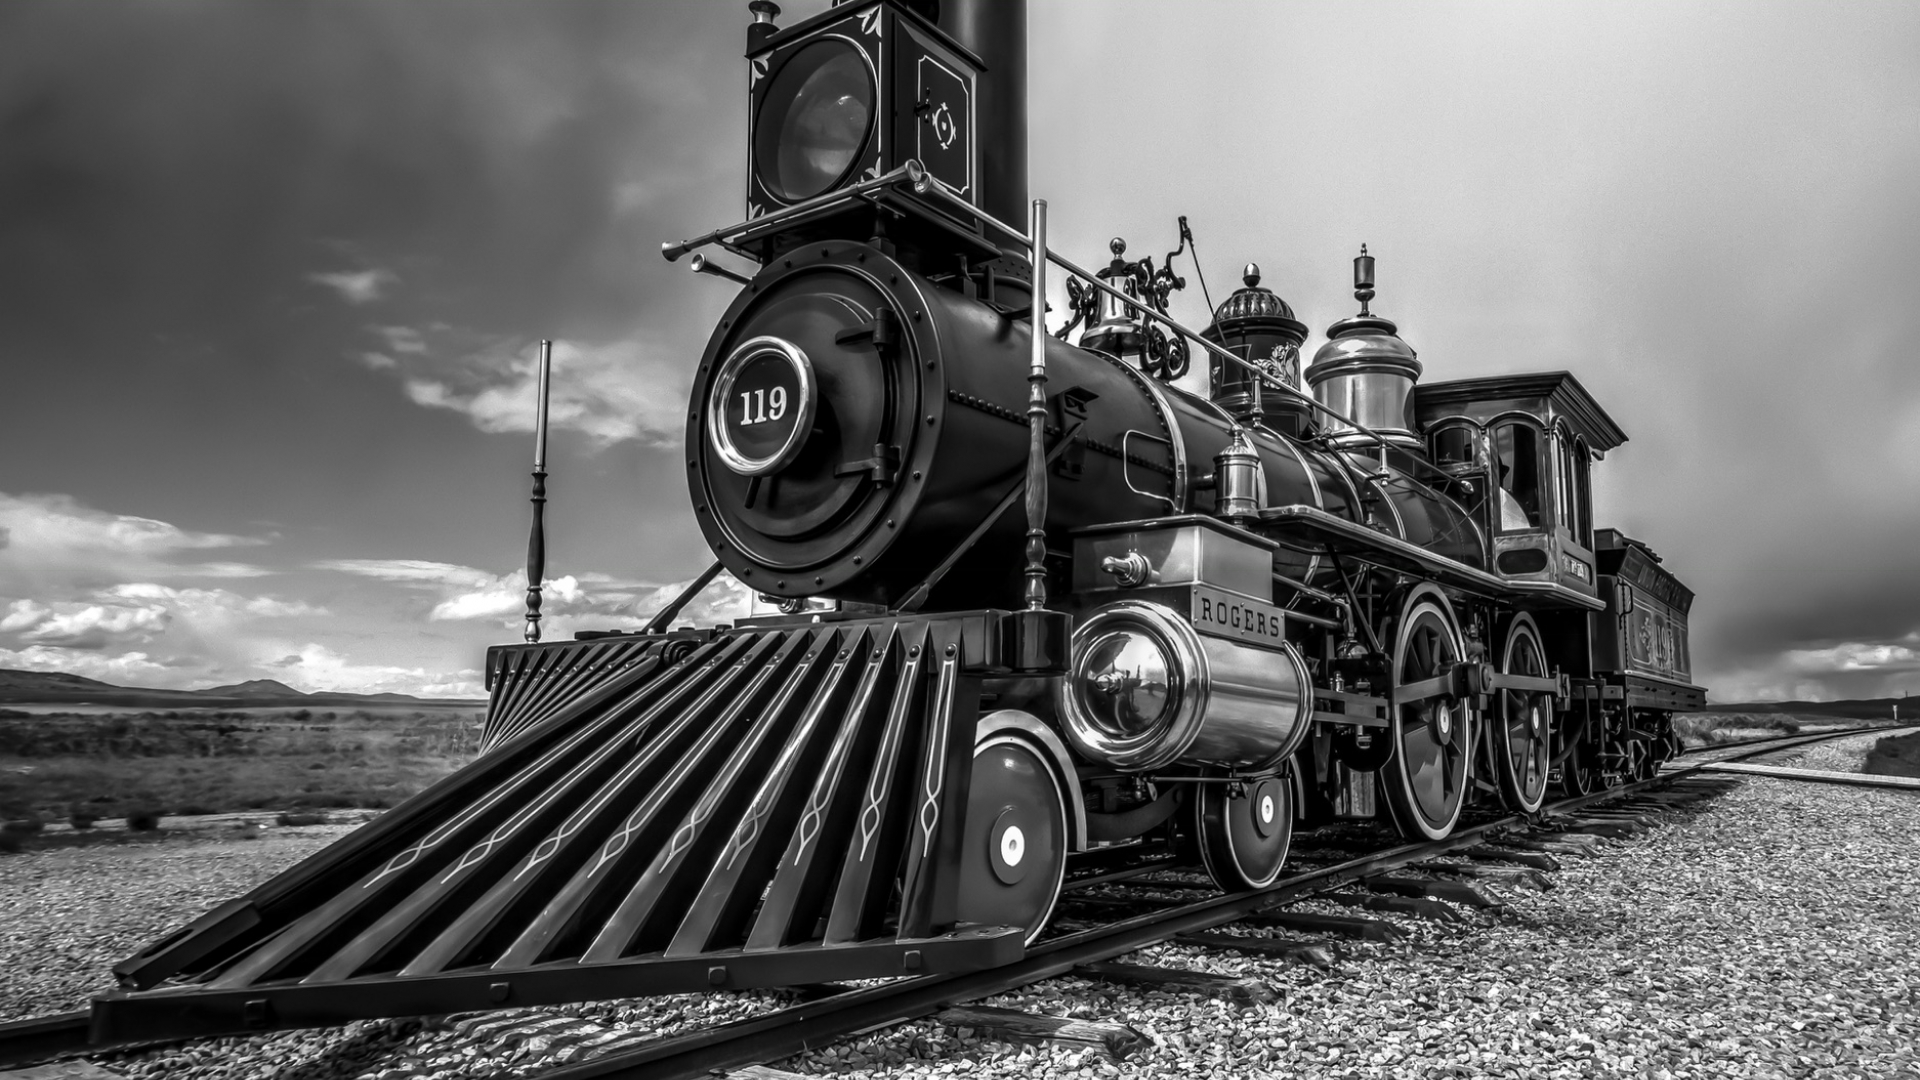 Golden Spike National Historic Site contest image by Robert Fischer